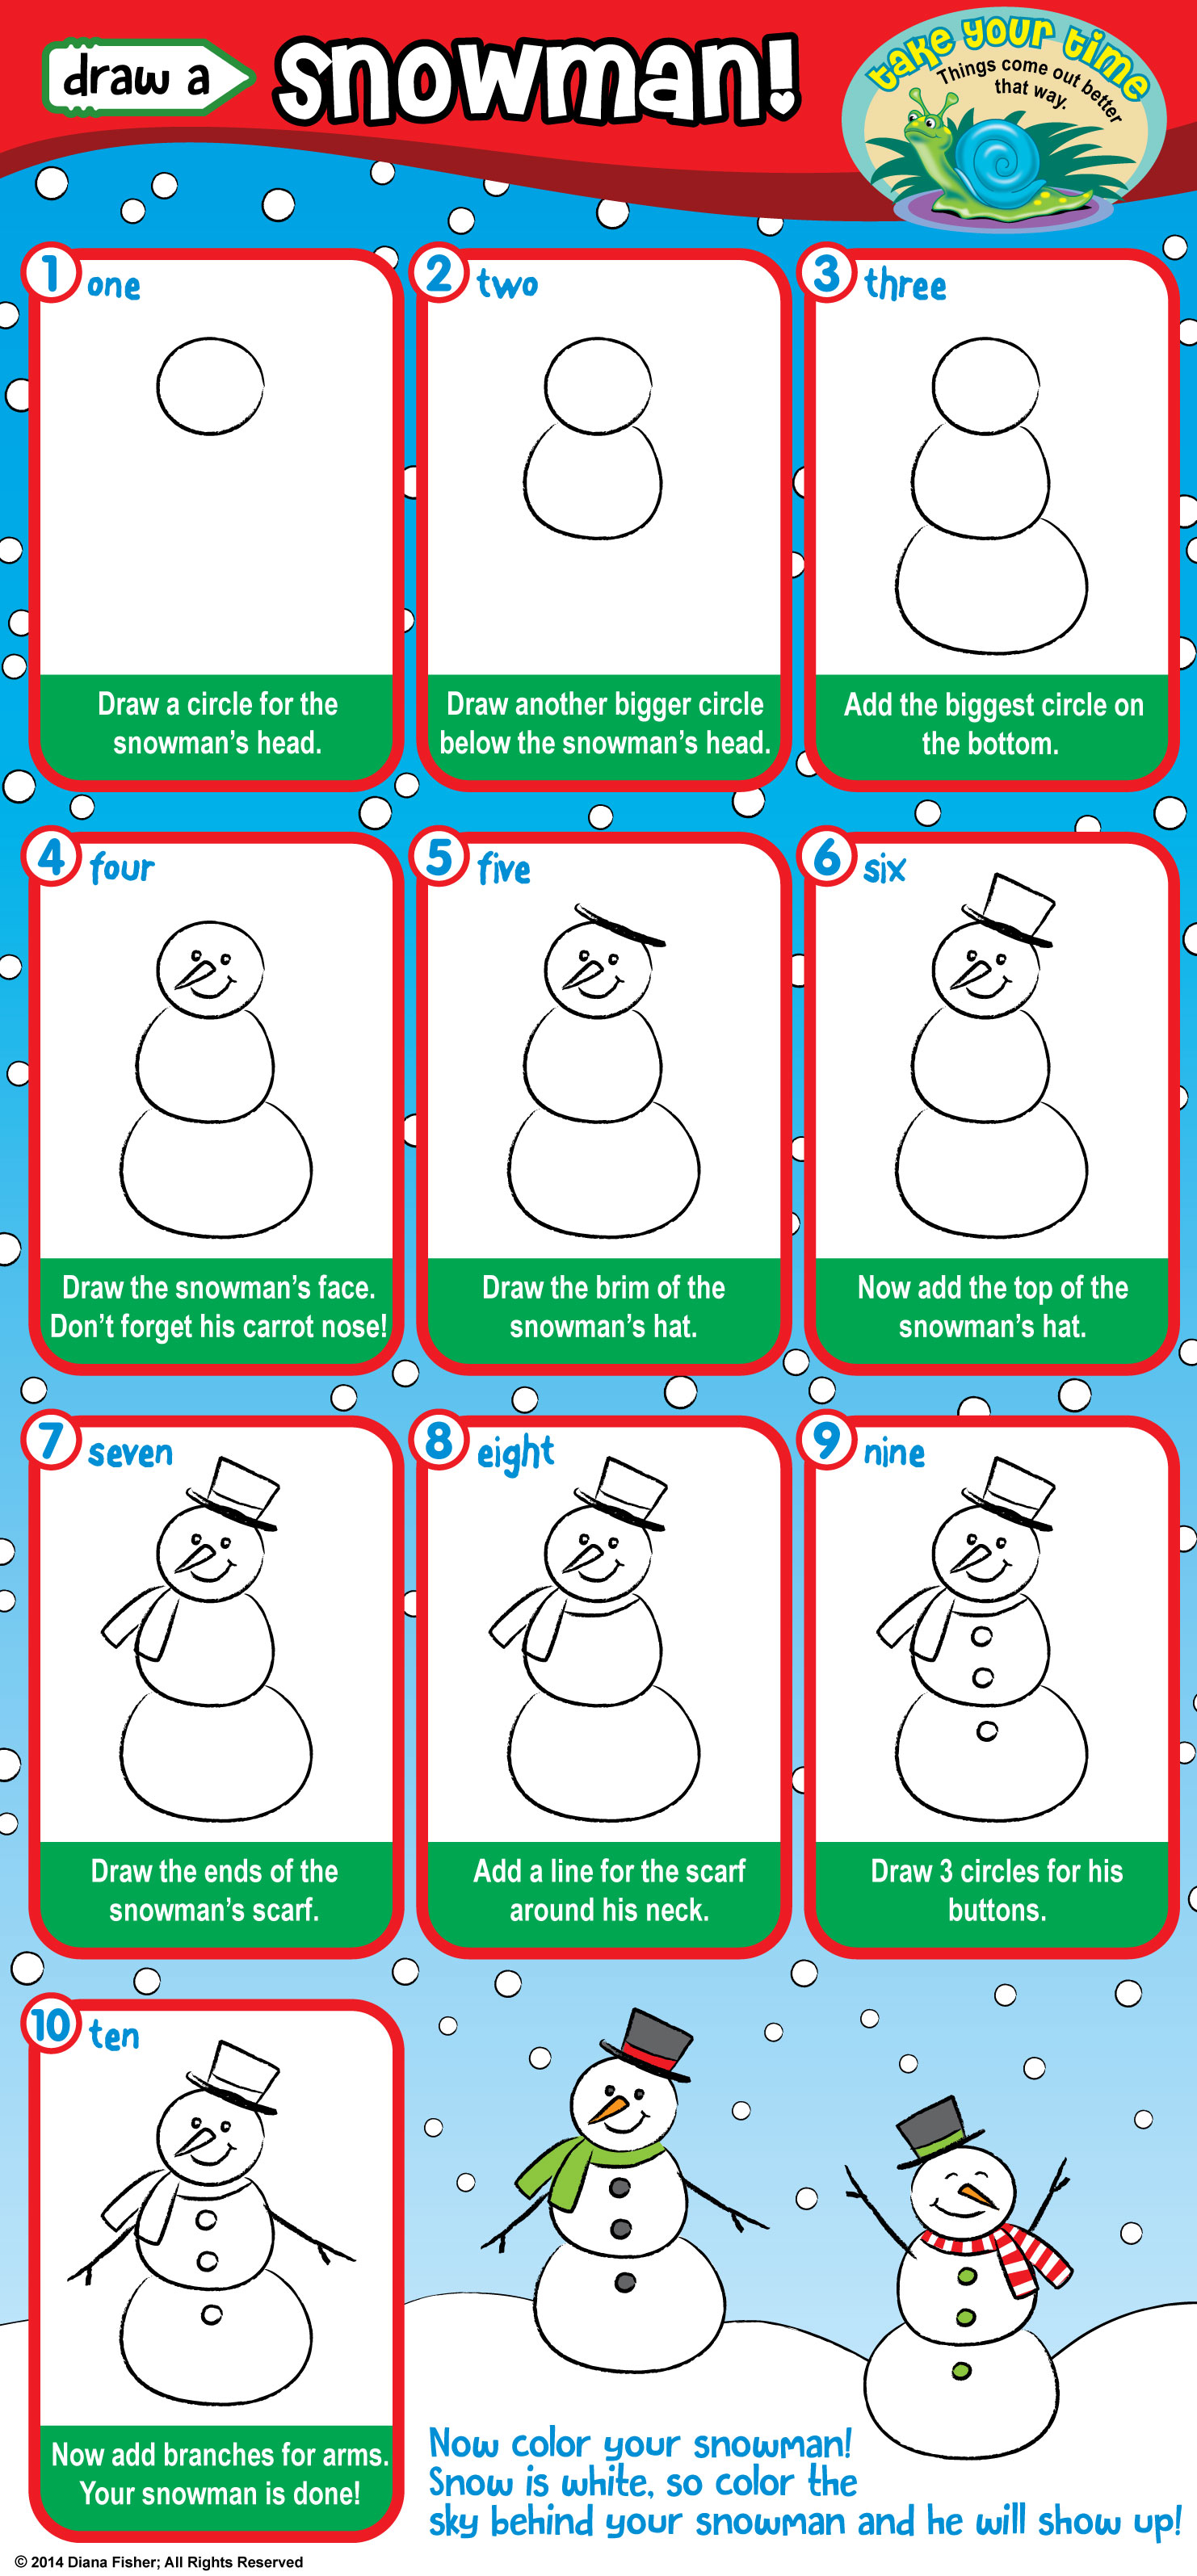 step instructions for how to draw a snowman